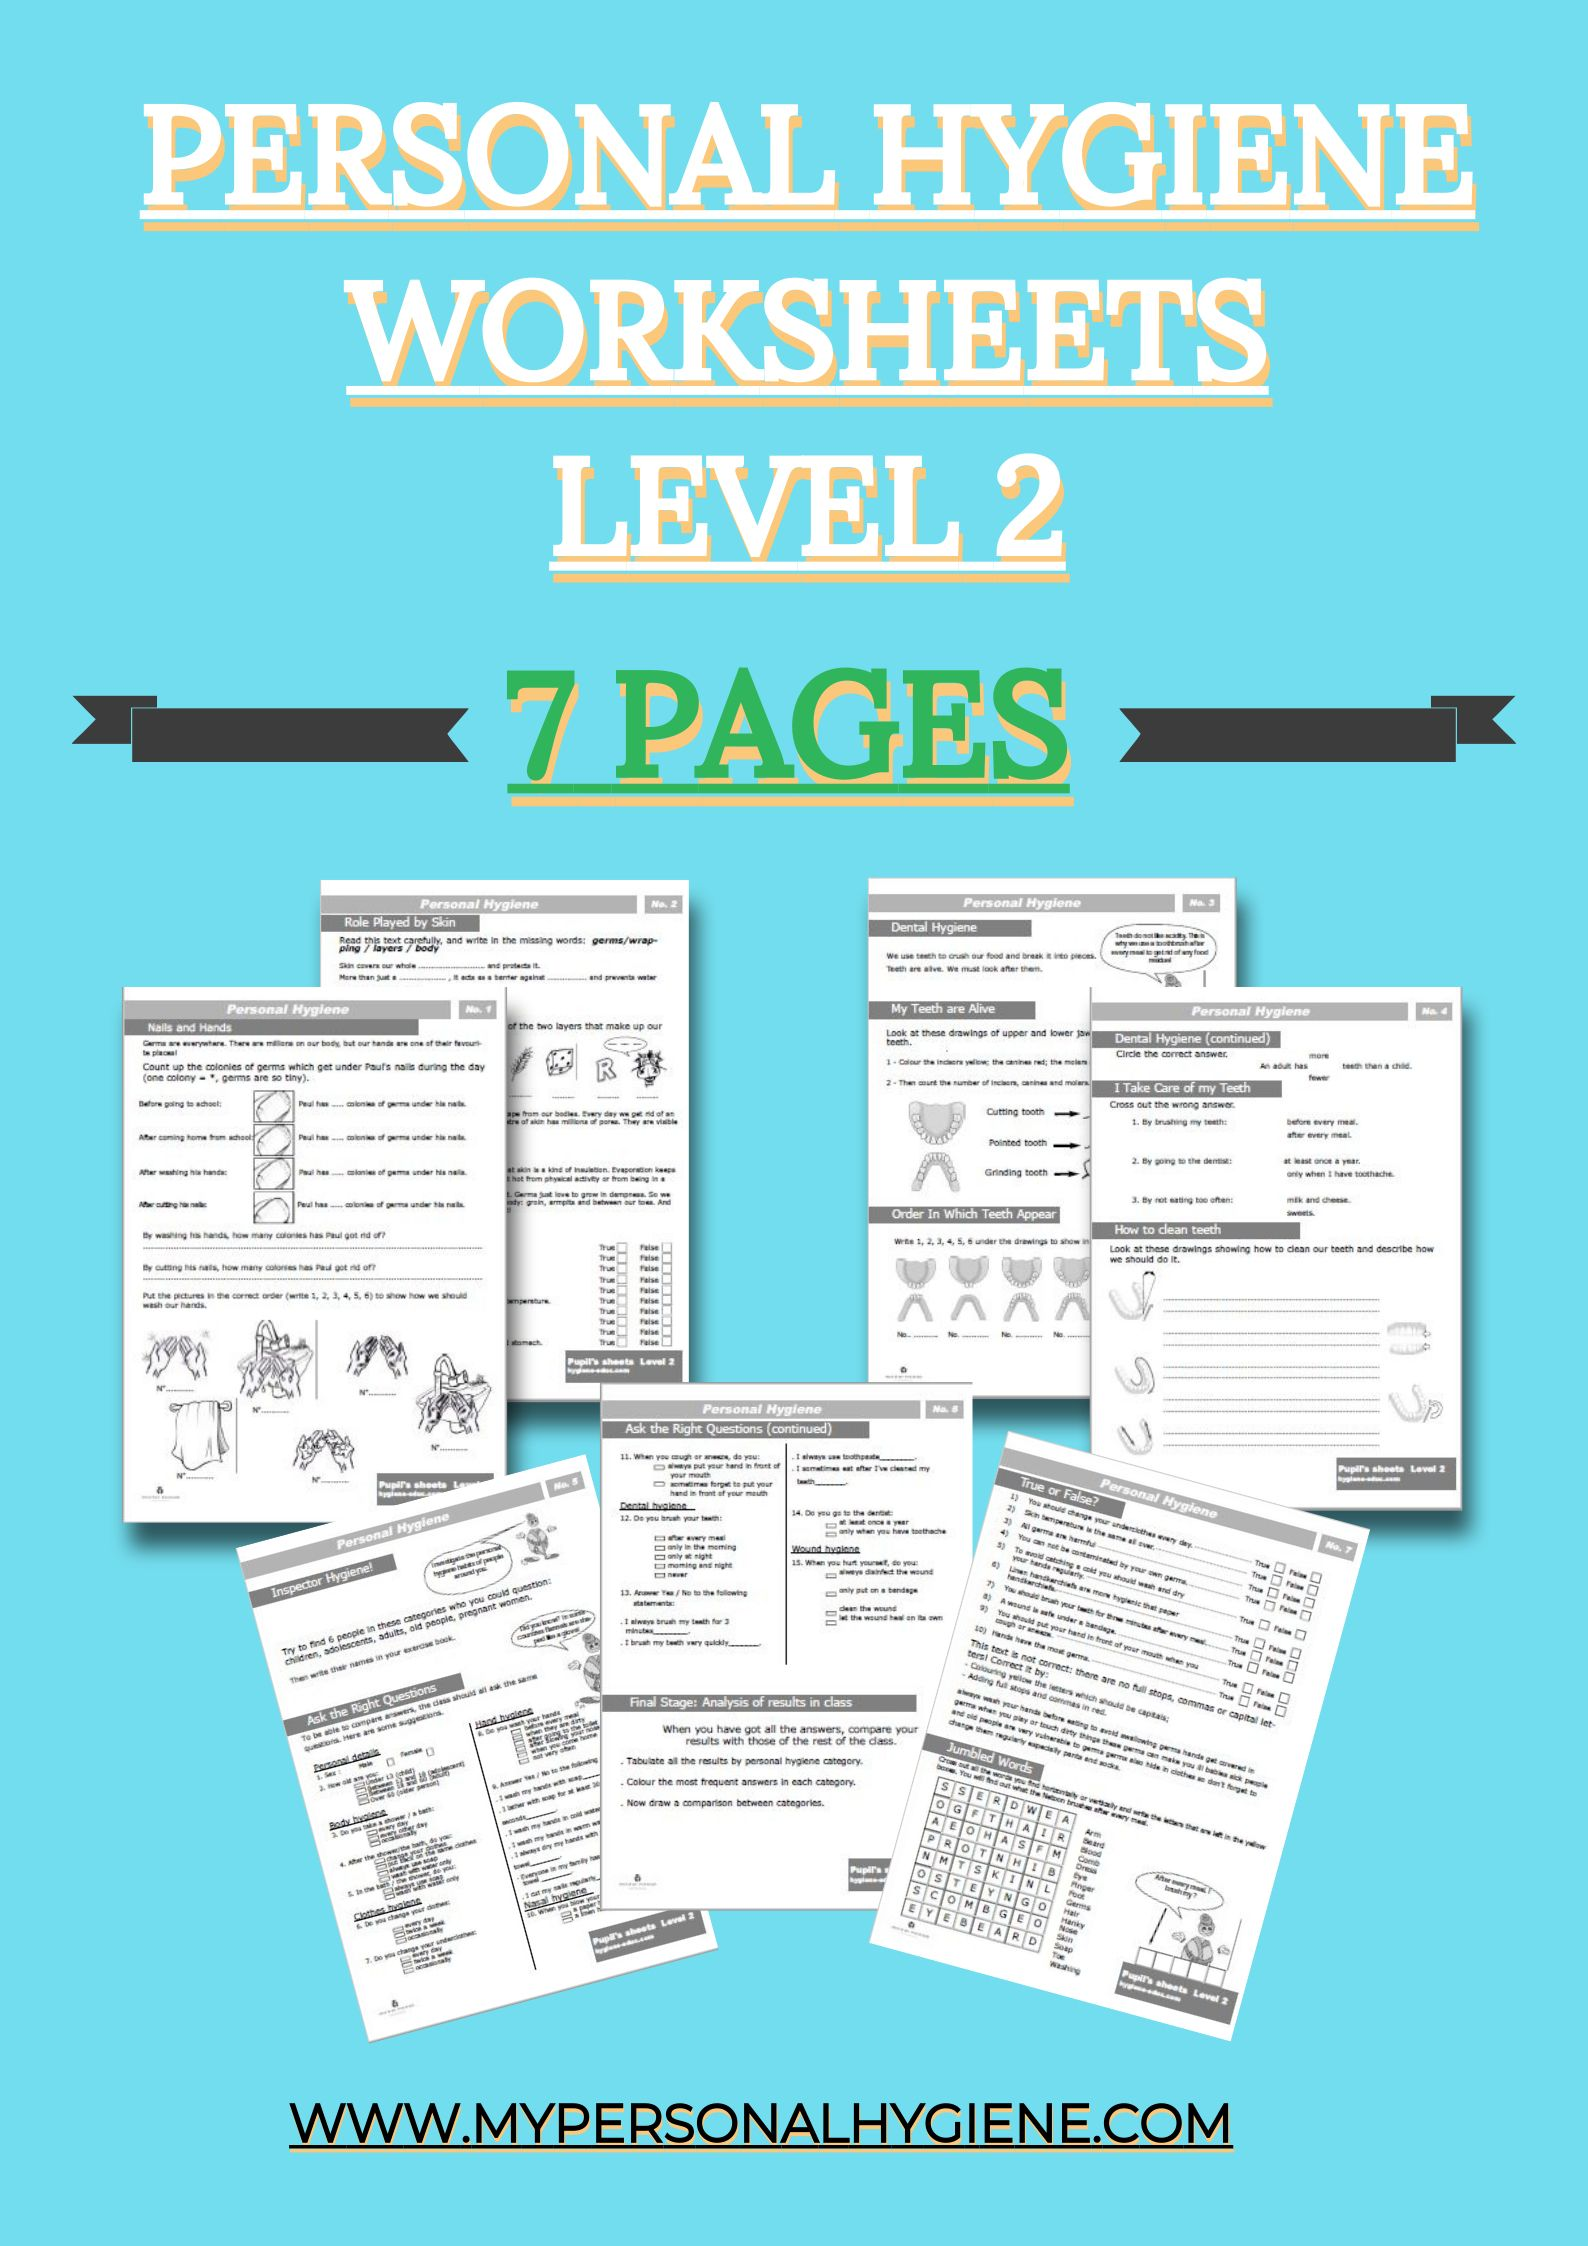 Level 2 Of Personal Hygiene Worksheets For Kids Included Activities And Topics In This Level